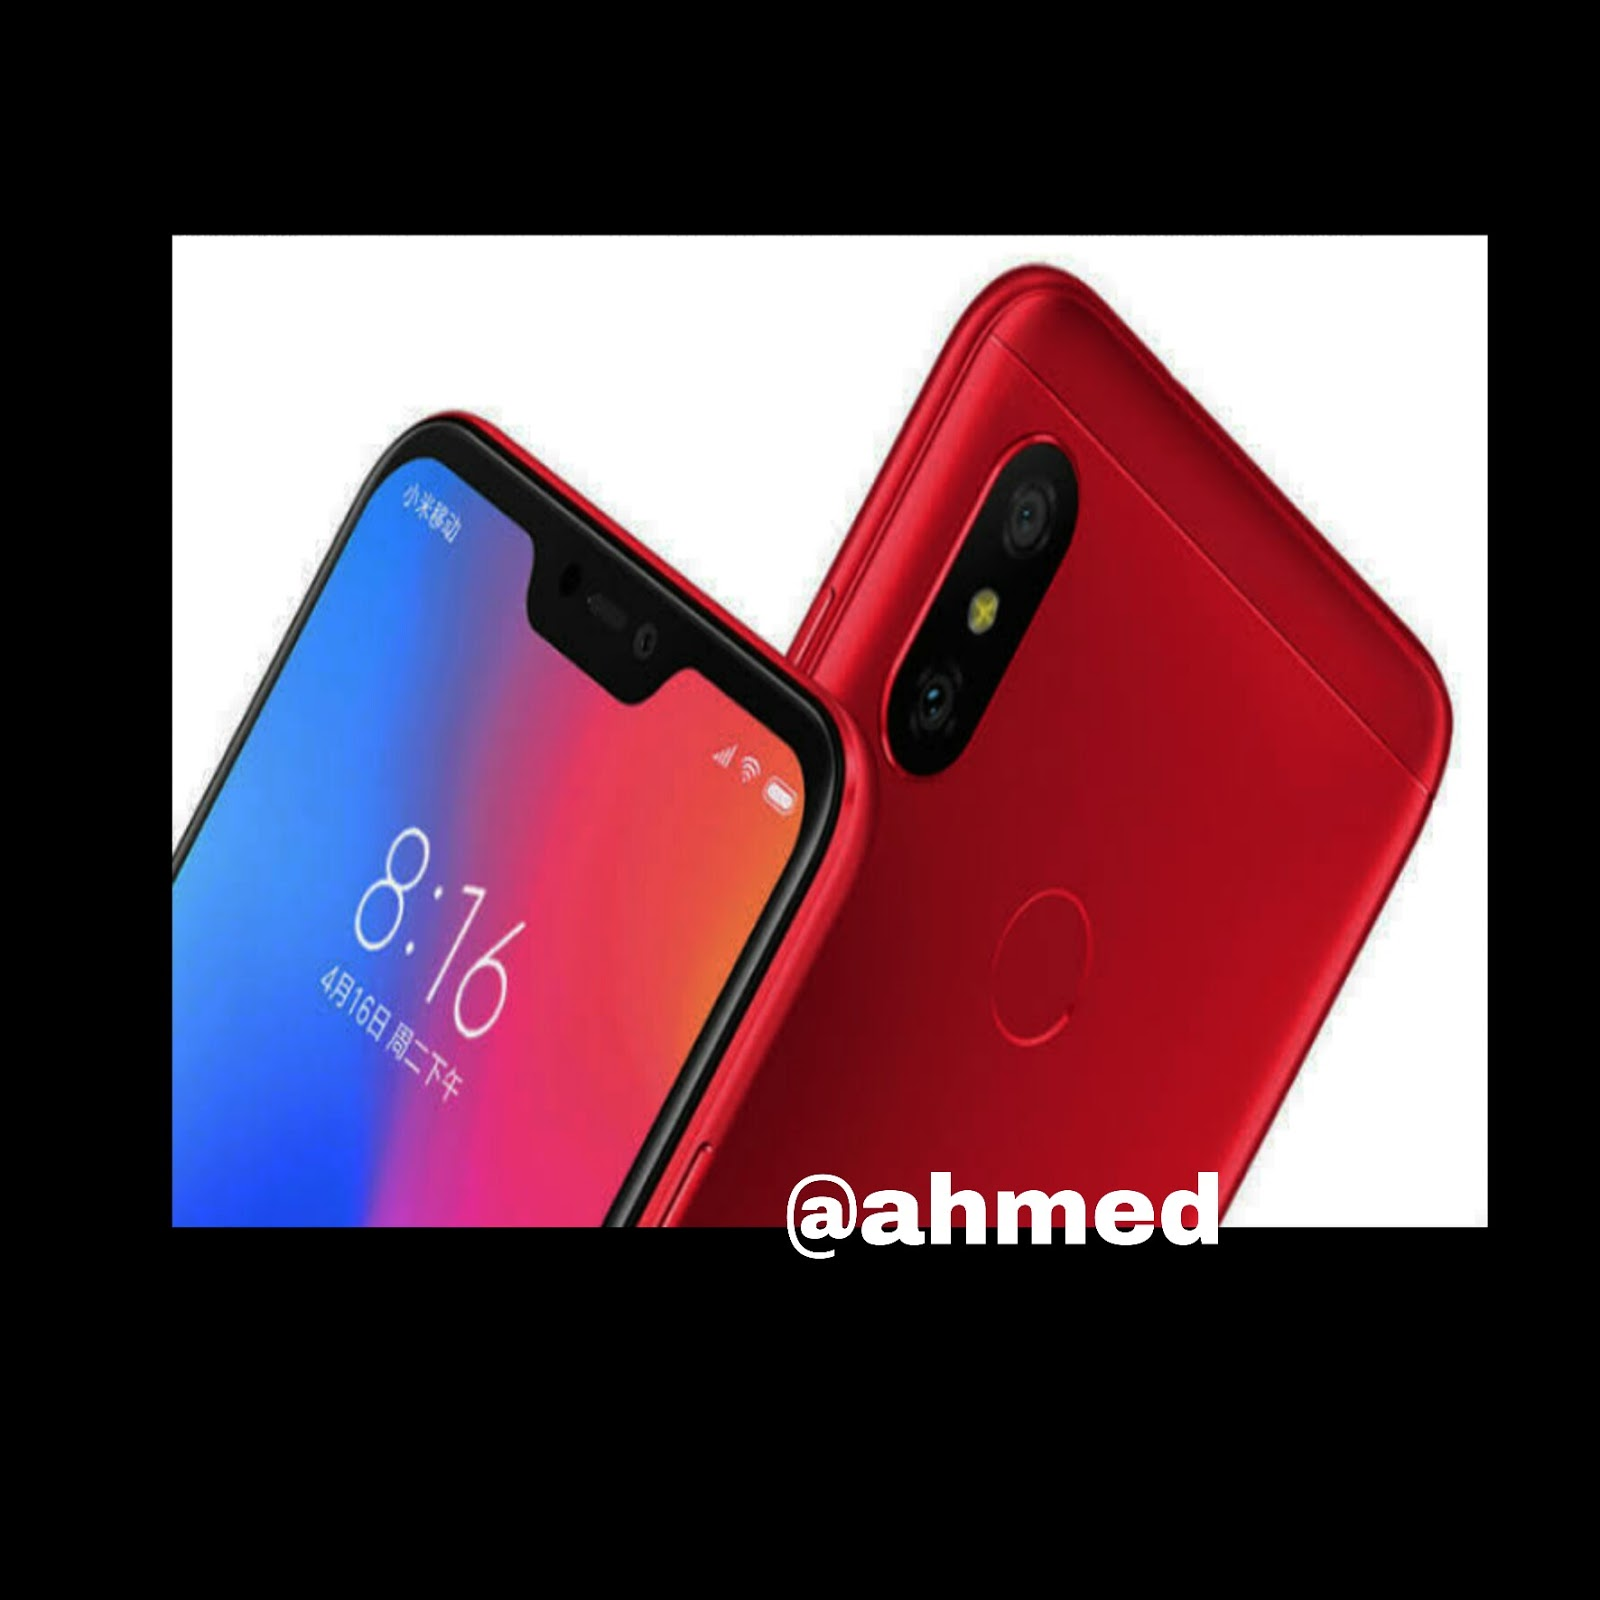 Xiaomi Redmi 6 6a Pro Storage And Colour Variants 2 16gb Gold Leaked Ahead Of September 5 Launch